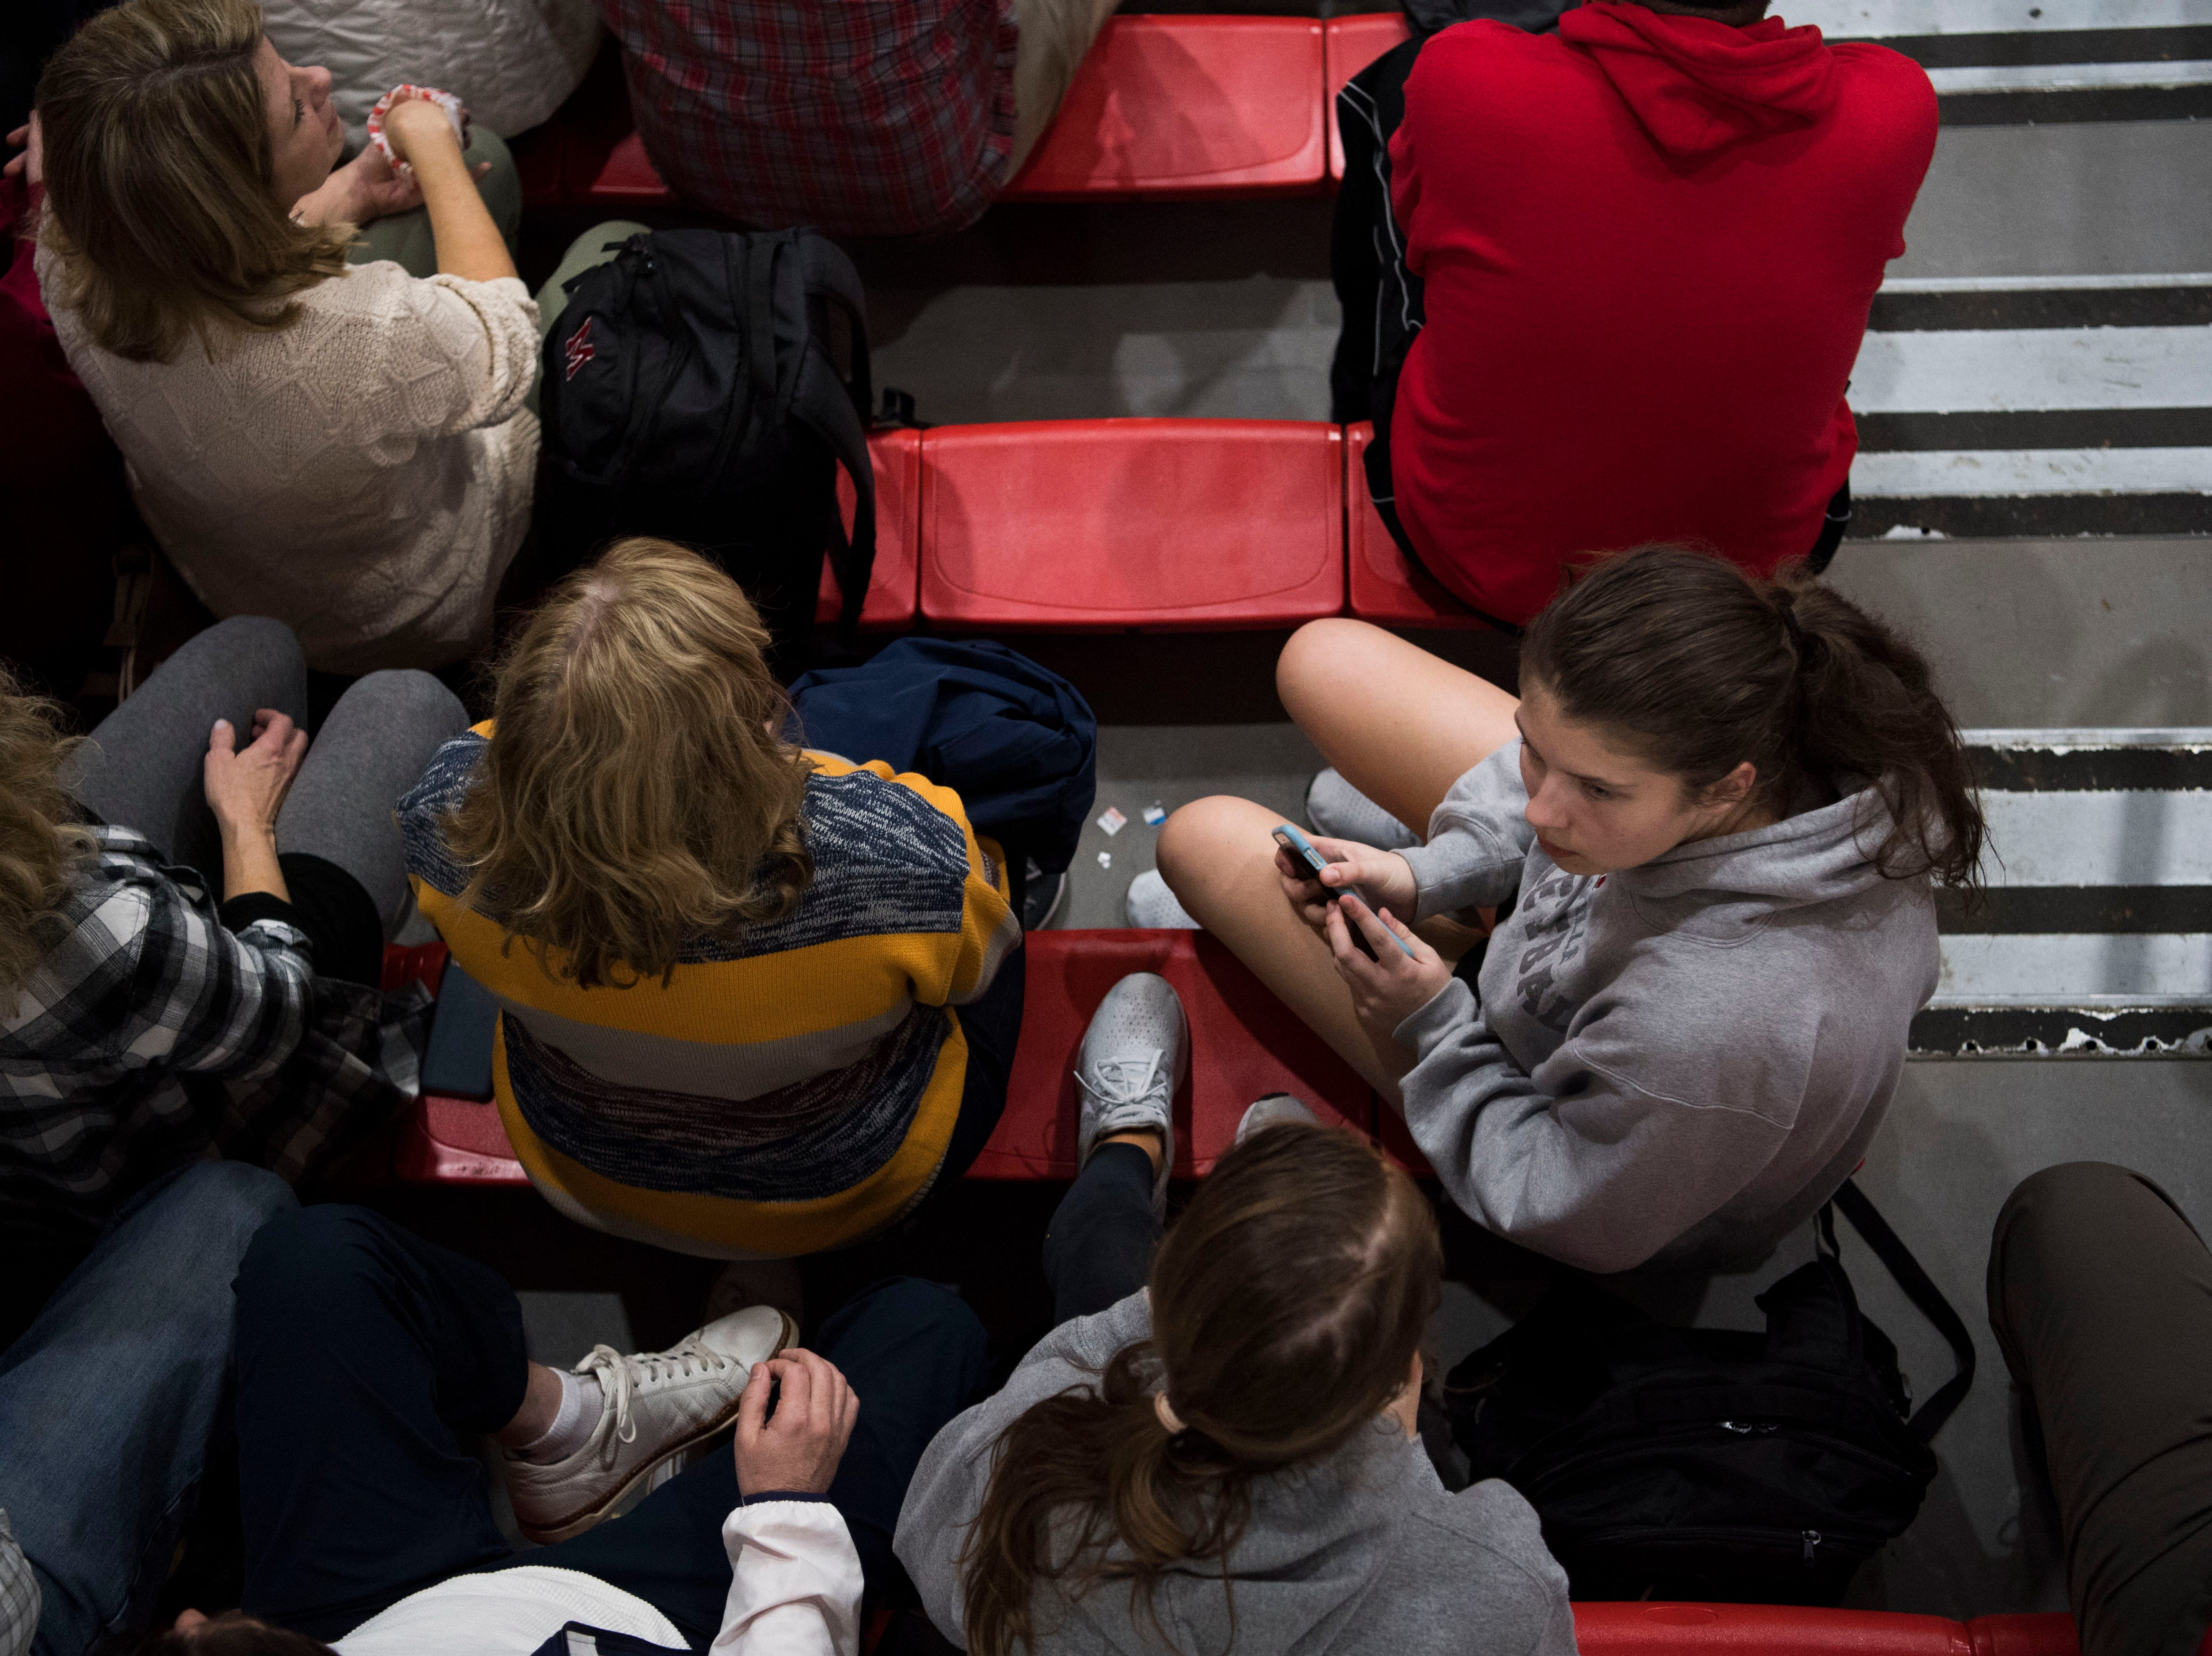 Fans sit in the stands before a high school basketball game between Maryville and Heritage at Heritage Friday, Jan. 4, 2019. Both Maryville boys and girls teams beat Heritage.